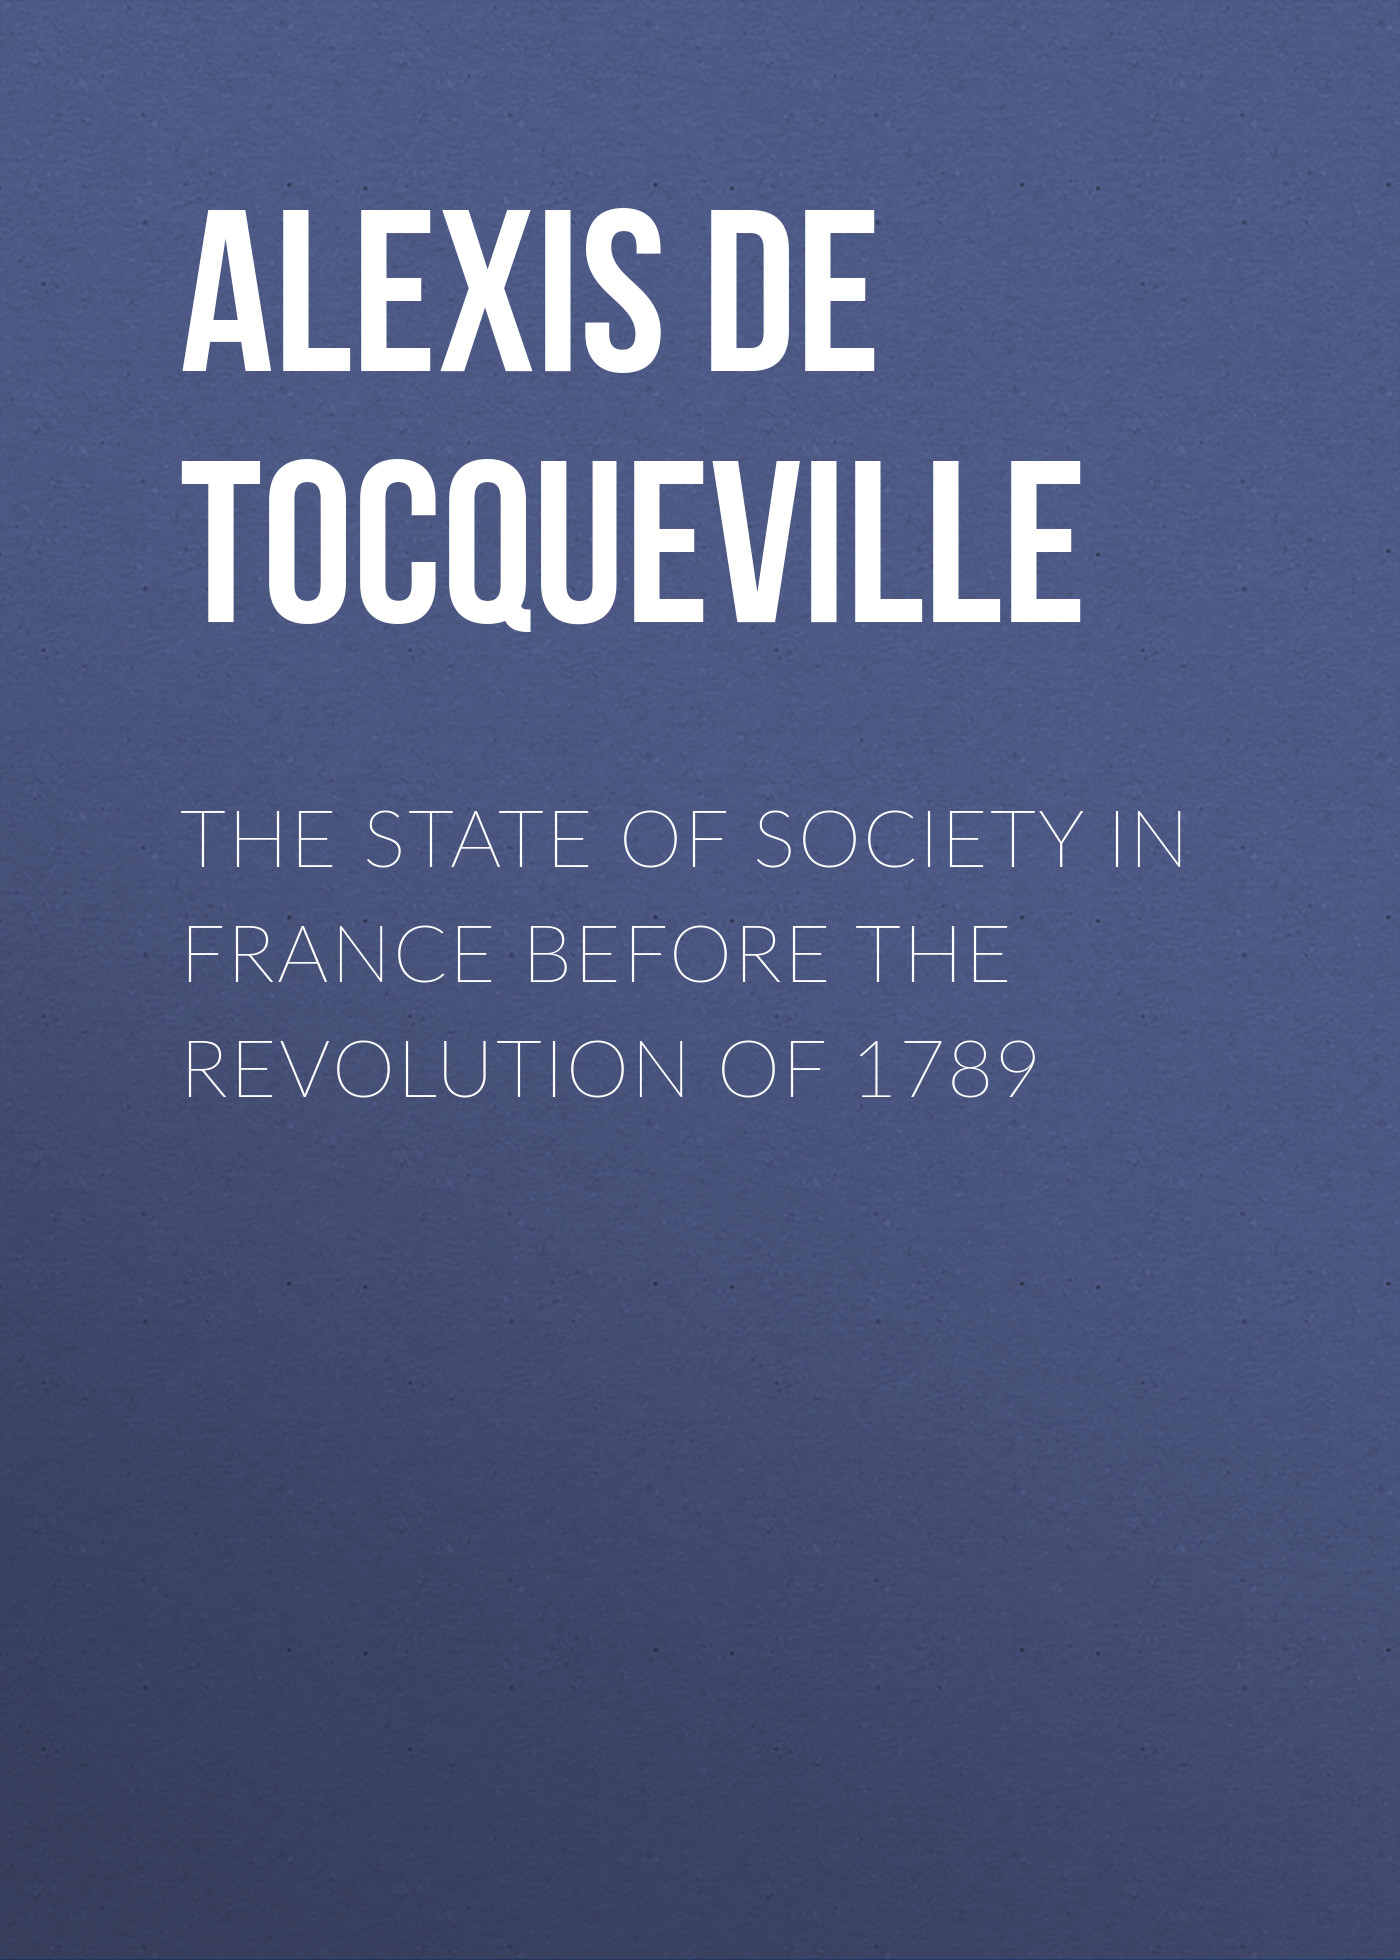 Alexis de Tocqueville The State of Society in France Before the Revolution of 1789